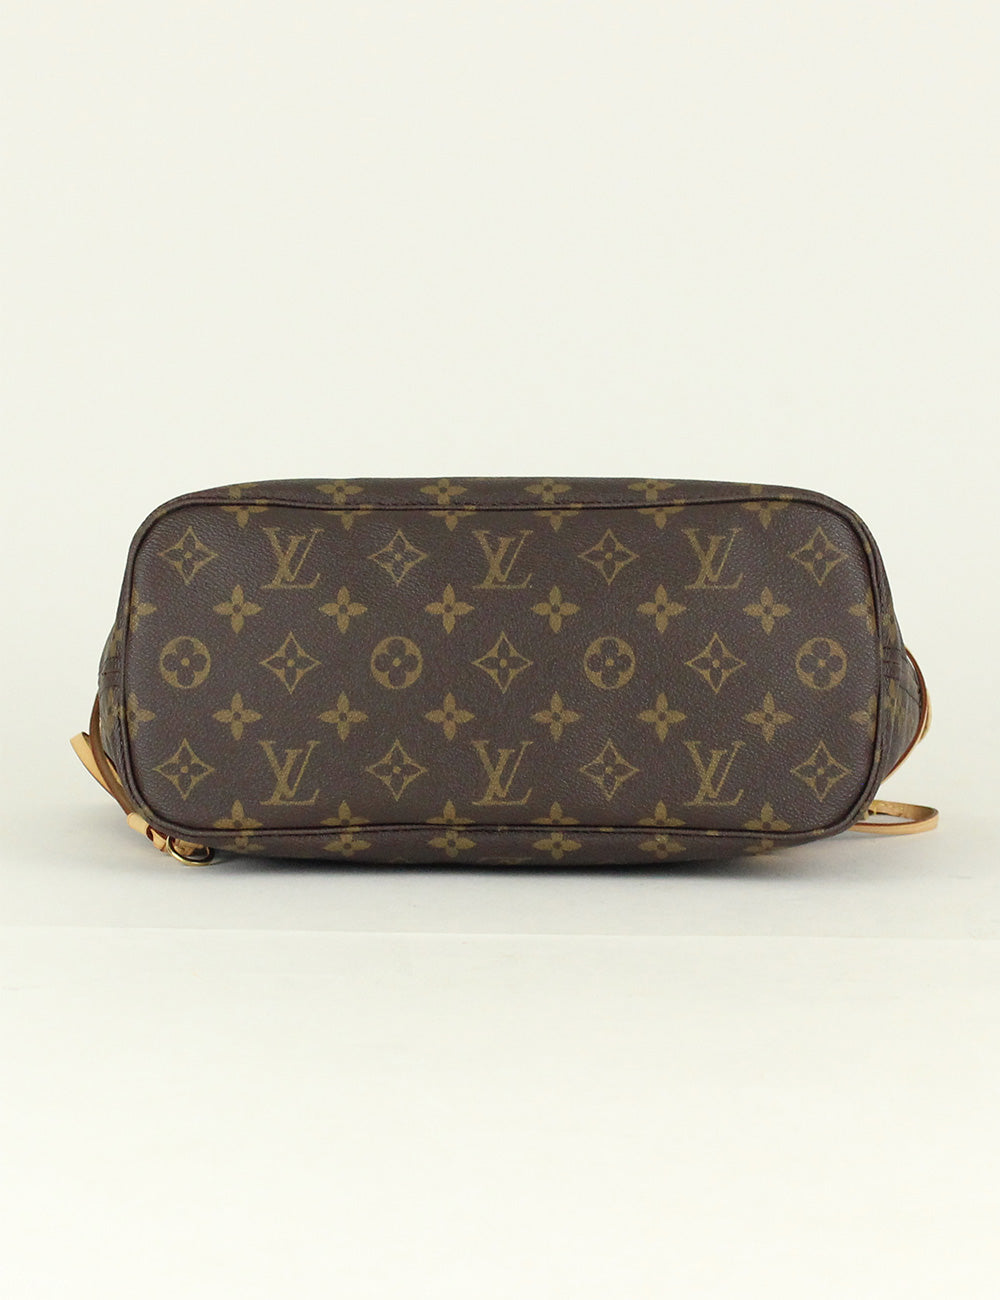 2cc09262b33b Louis Vuitton Neverfull PM – Brand Shop Treasures